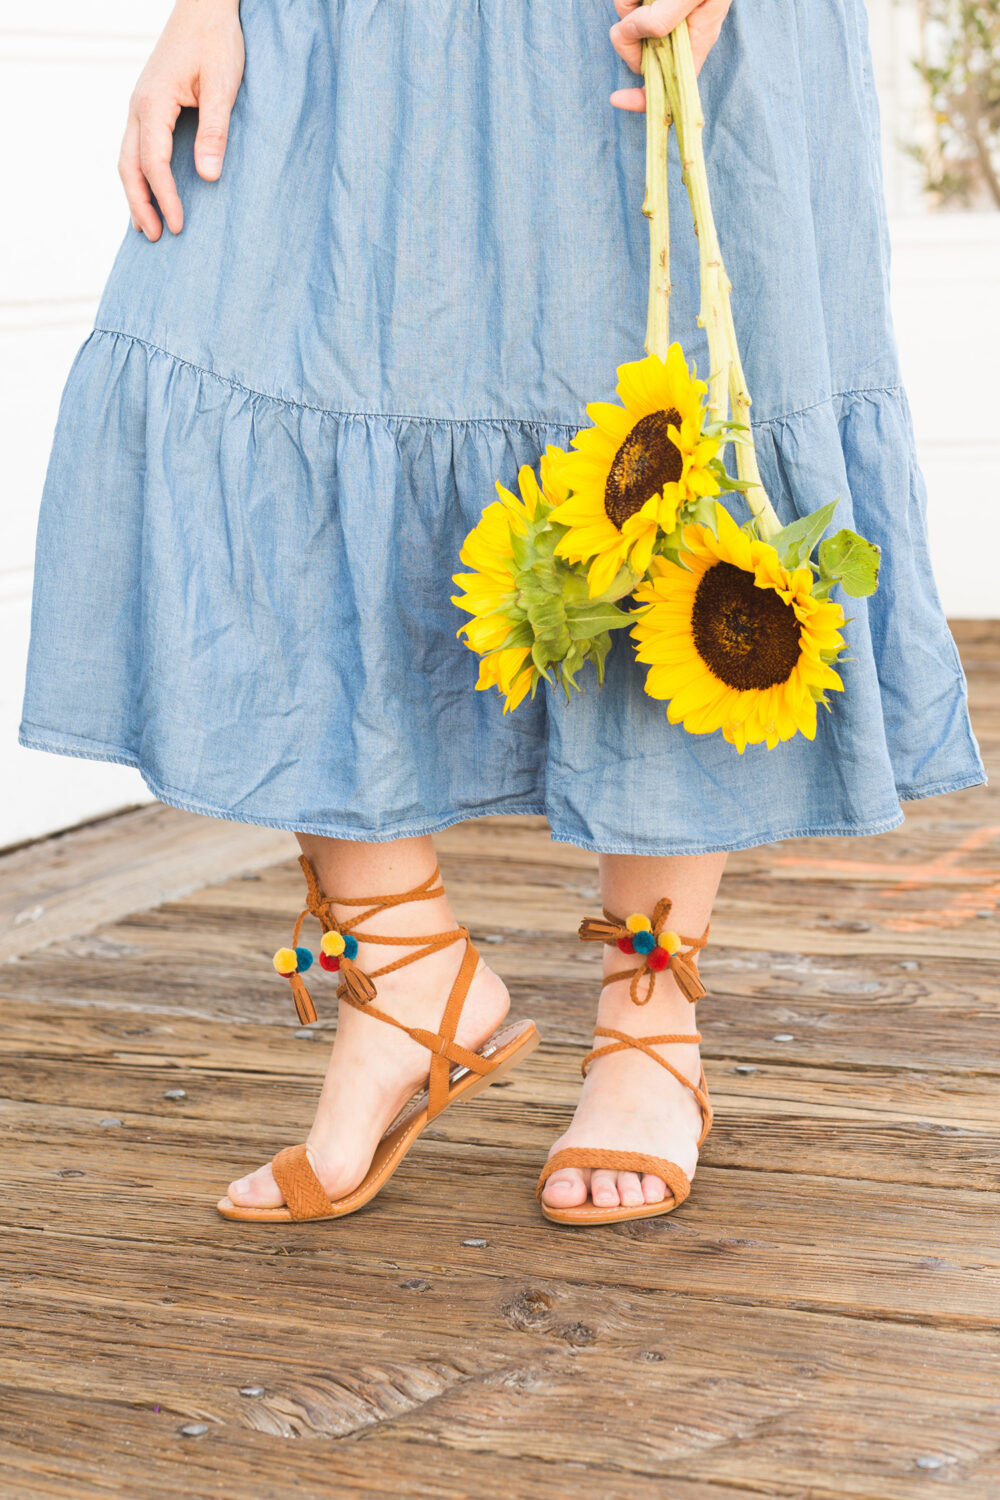 This chambray dress is the PERFECT casual sundress and how cute are these pom pom sandals?!?